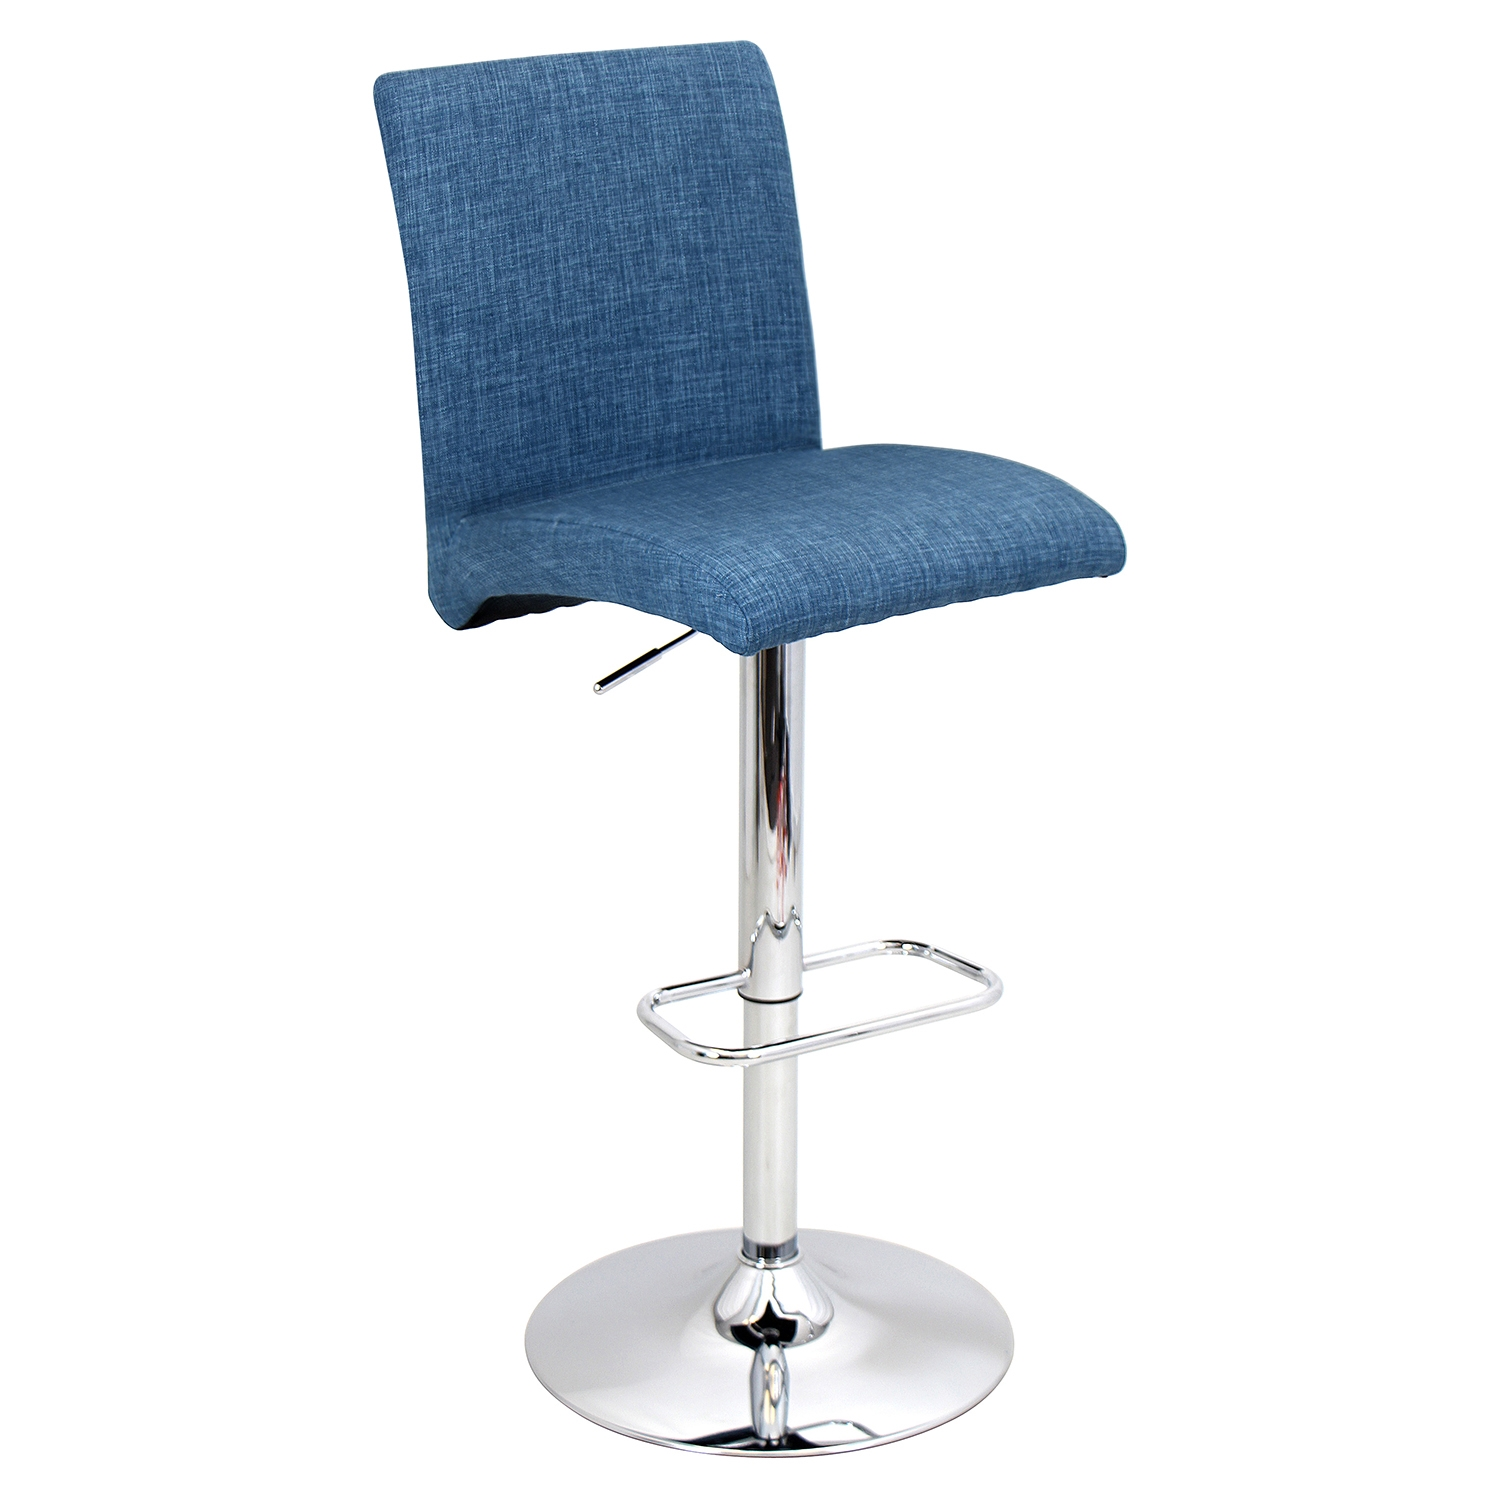 Tintori Height Adjustable Barstool - Swivel, Blue